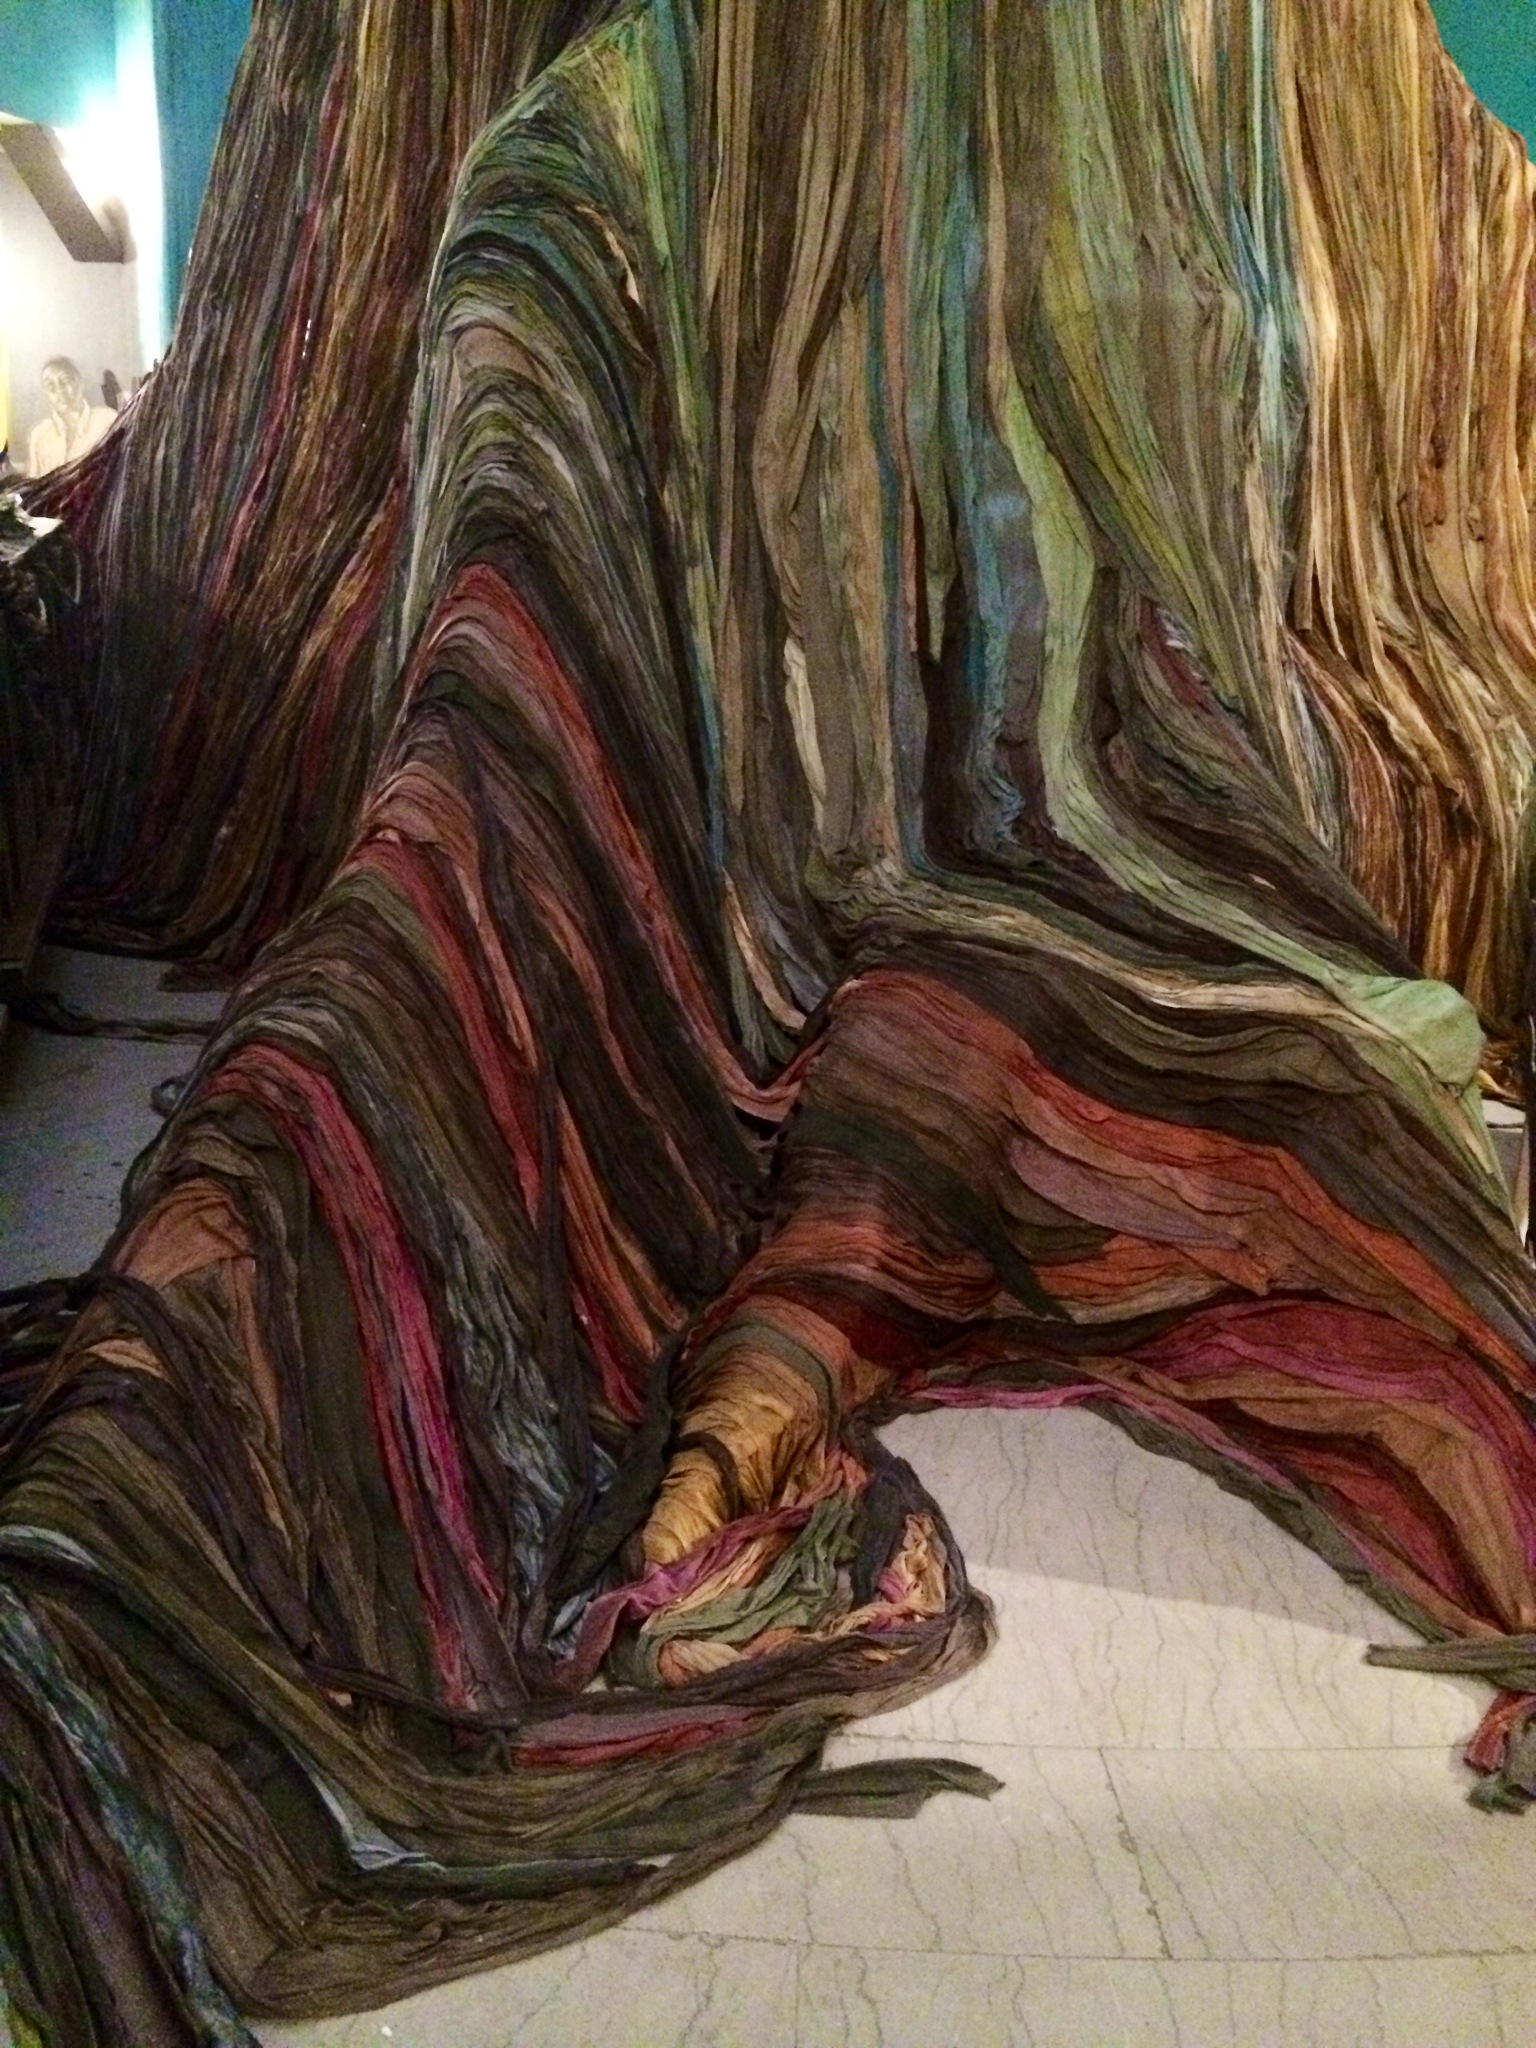 Strips of colored cloth created the tree